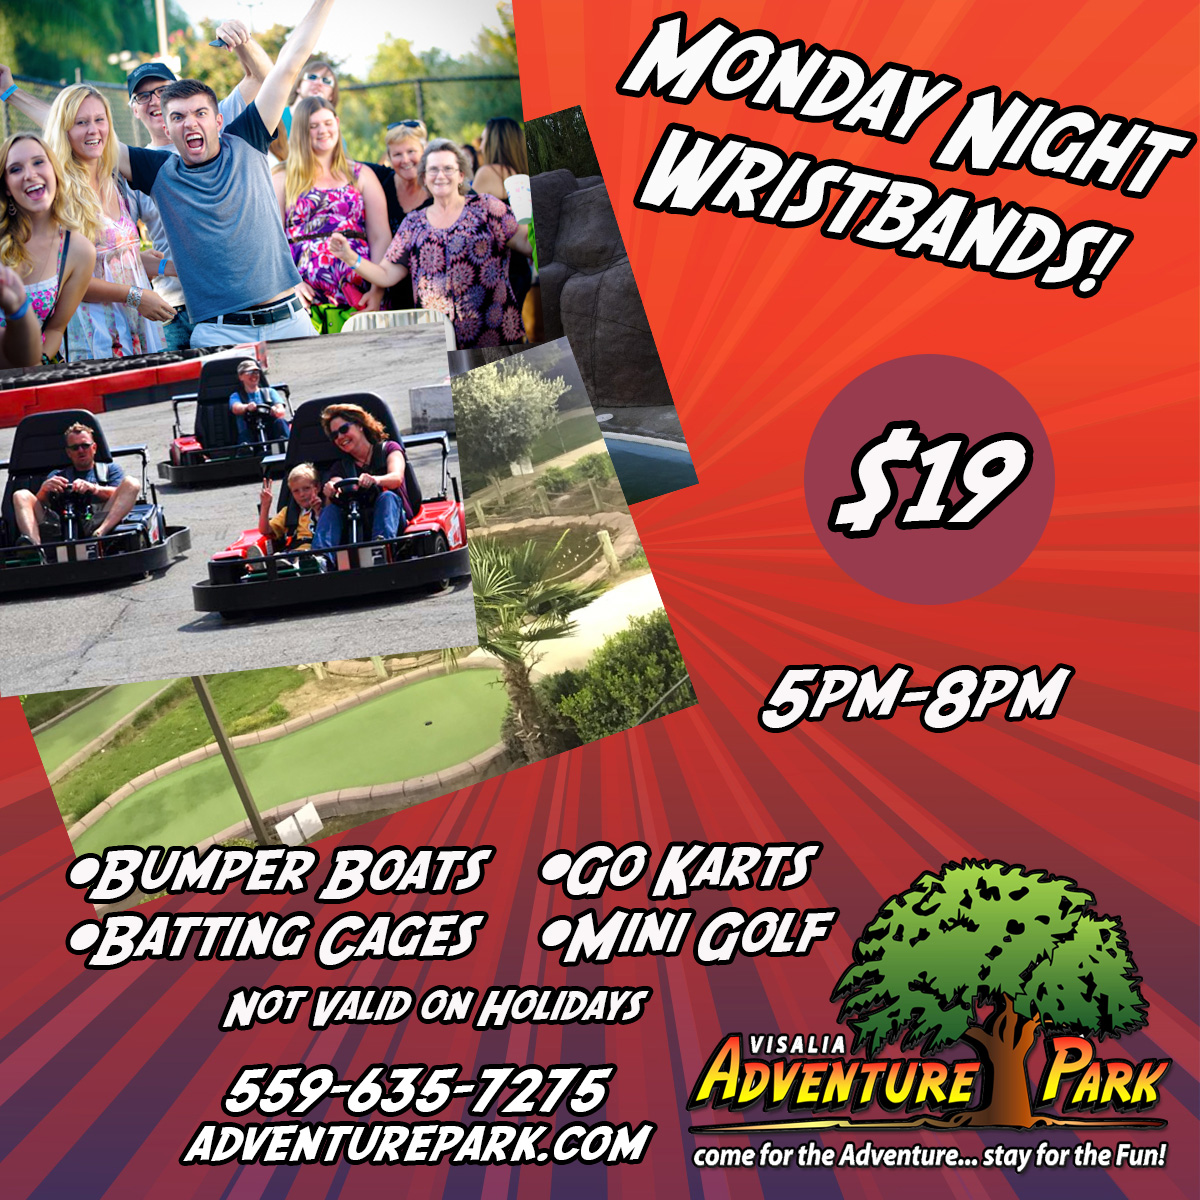 Monday Night Deals At Adventure Park In Visalia